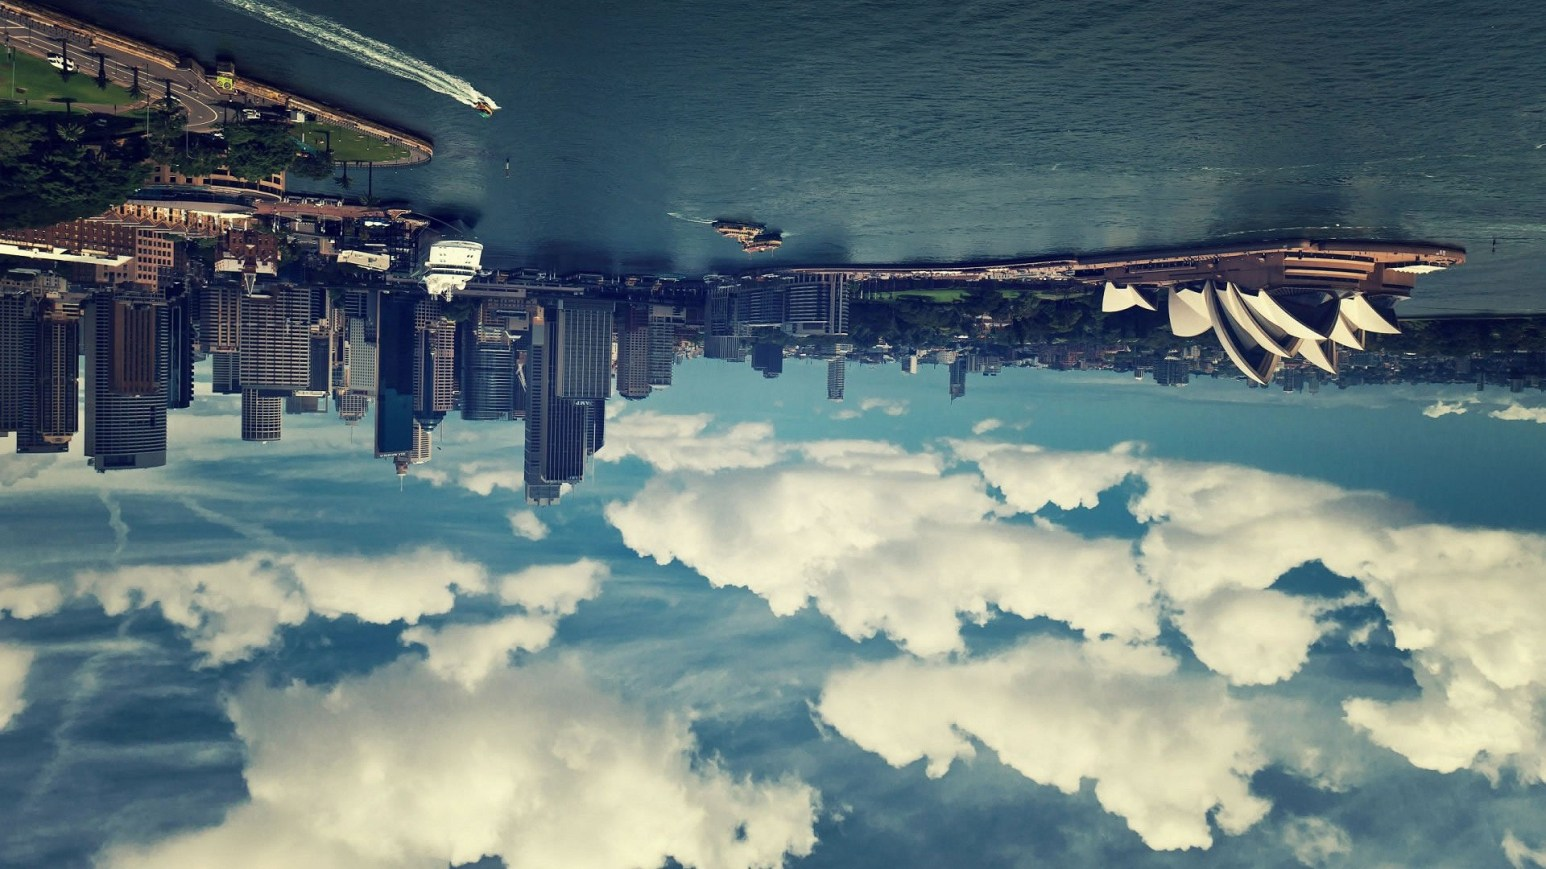 Upside down city